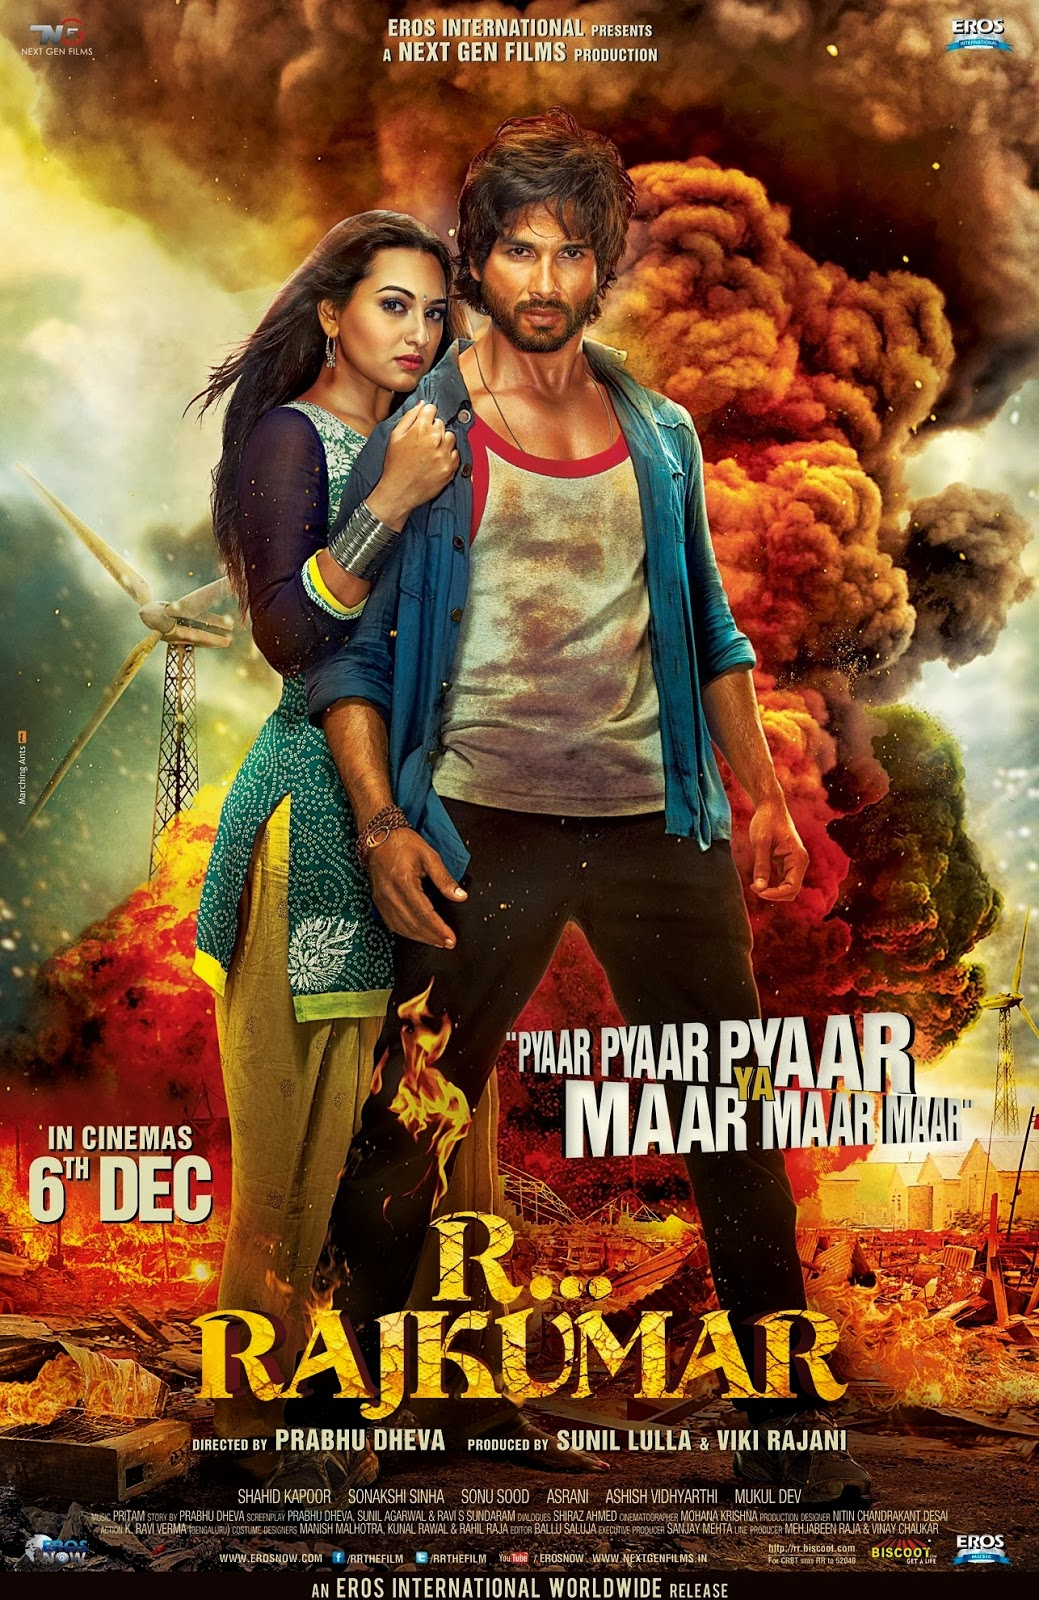 R Rajkumar 2013 Movie Review Trailers Music Videos